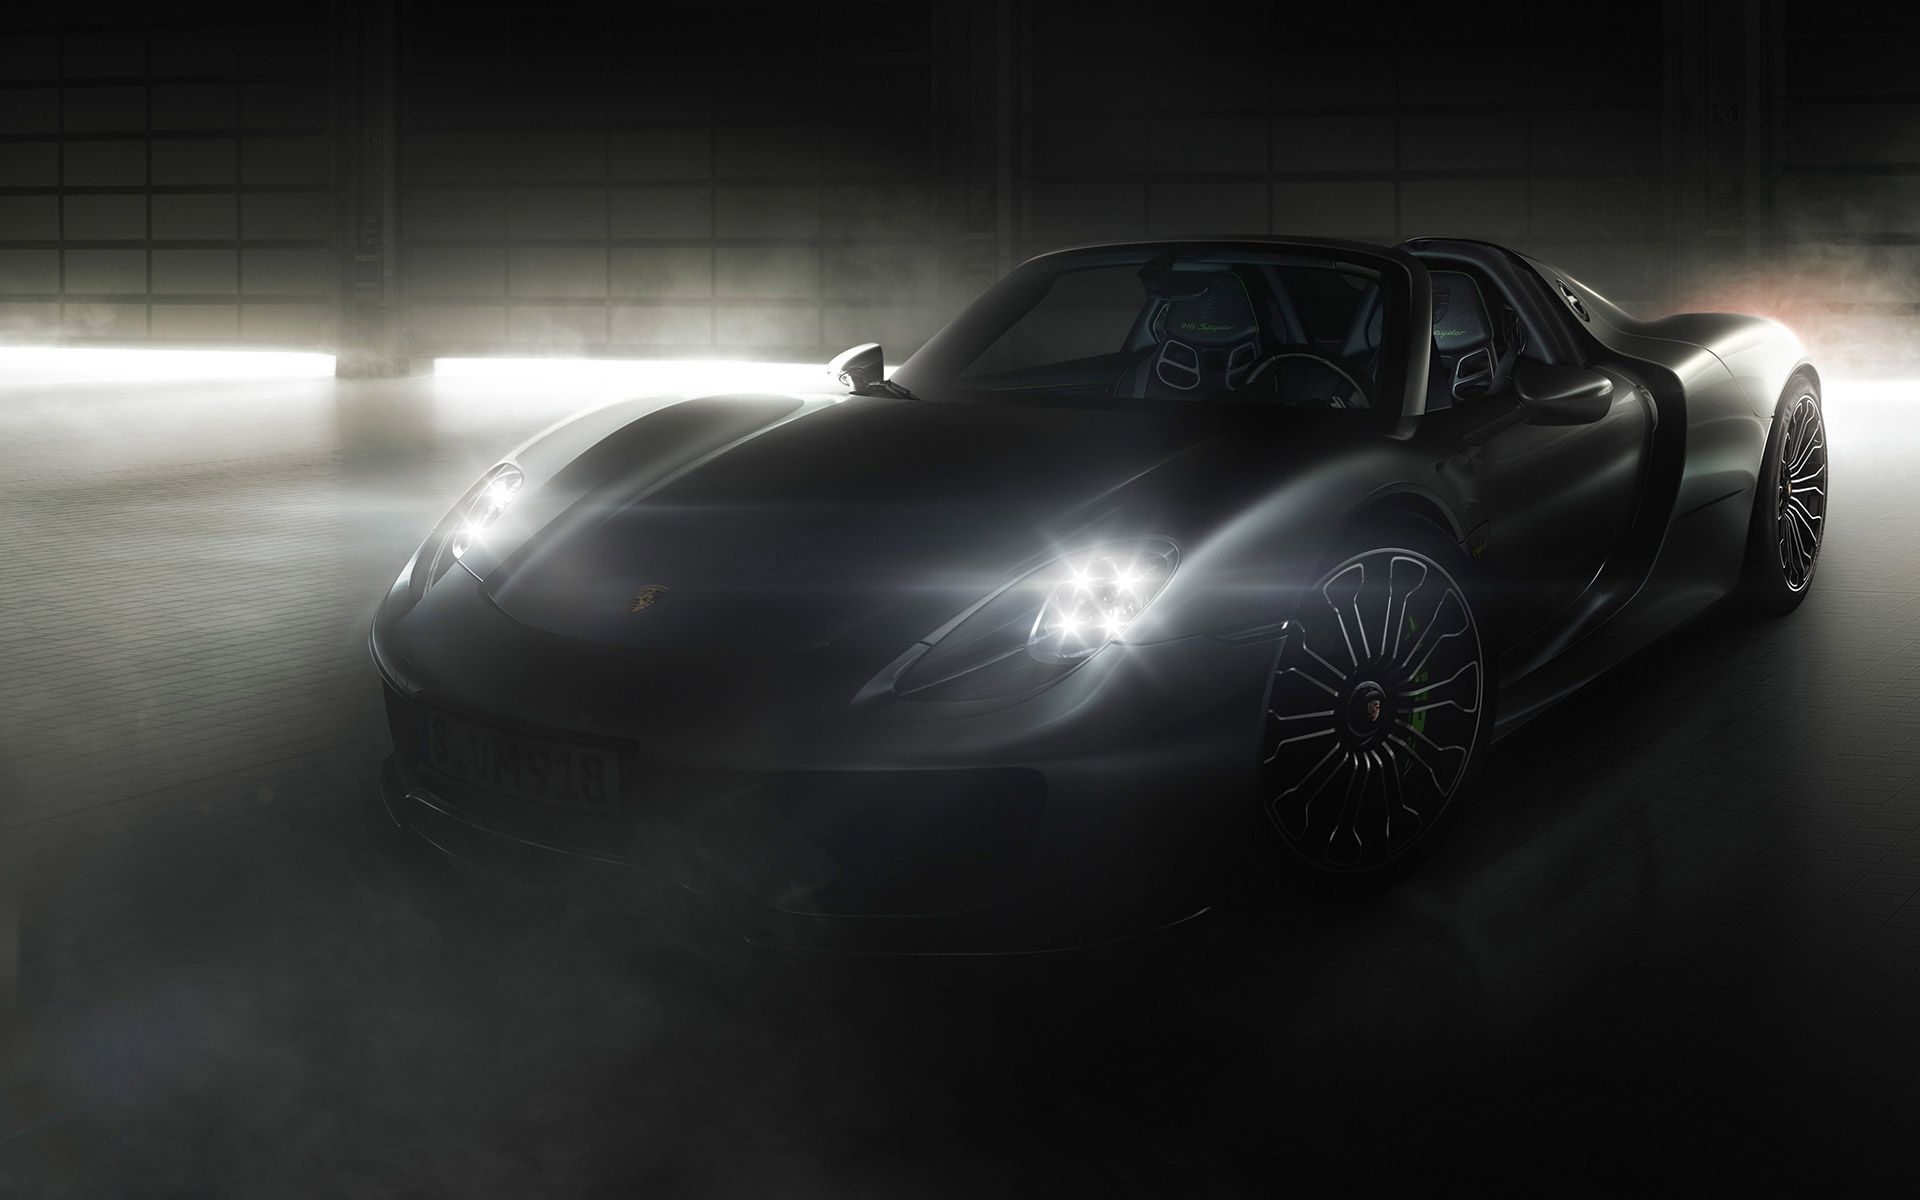 2015 porsche 918 spyder black wallpapers hd. Black Bedroom Furniture Sets. Home Design Ideas